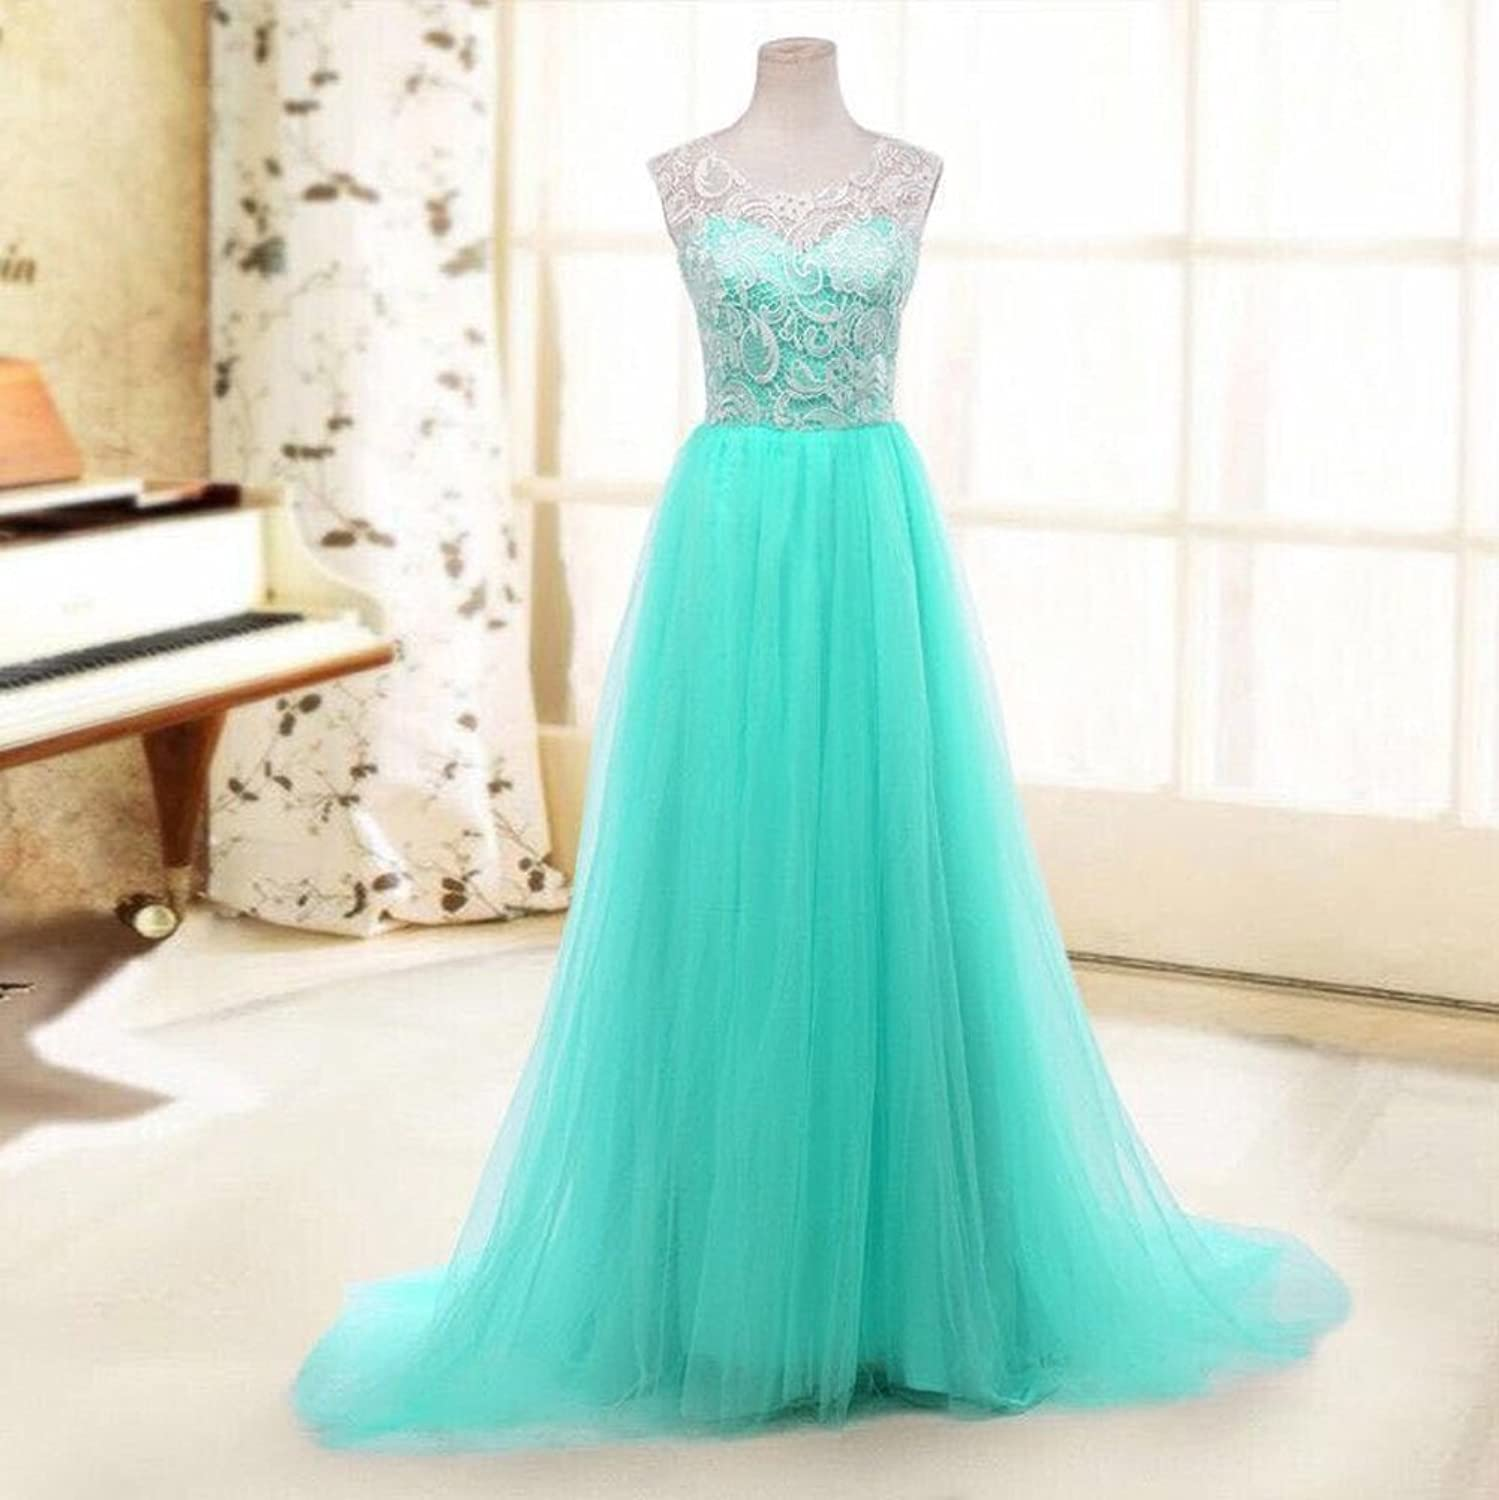 Women\'s Hollow out Lace Top Tulle Skirt Prom Gown Evening Maxi ...